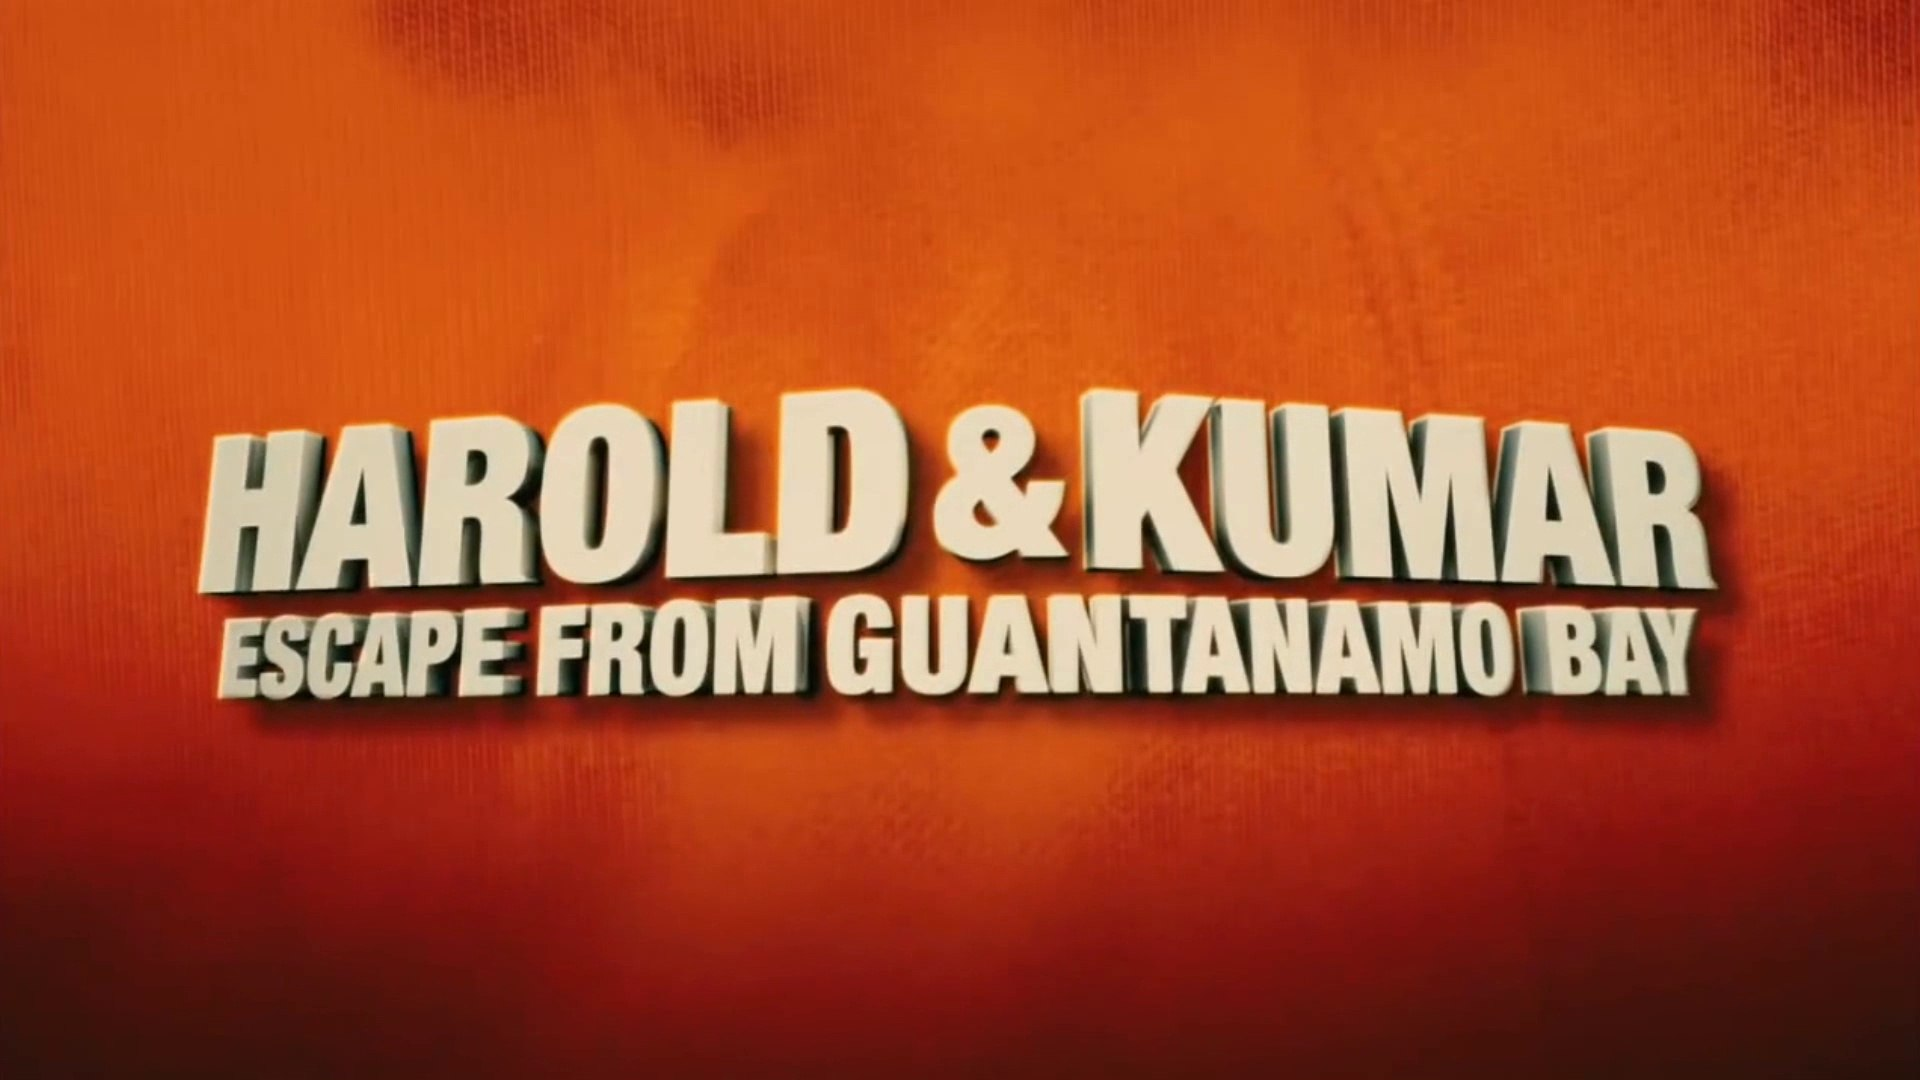 Harold And Kumar Escape From Guantanamo Bay Full Movie Free harold & kumar: escape from guantanamo bay (2008) trailer - hd